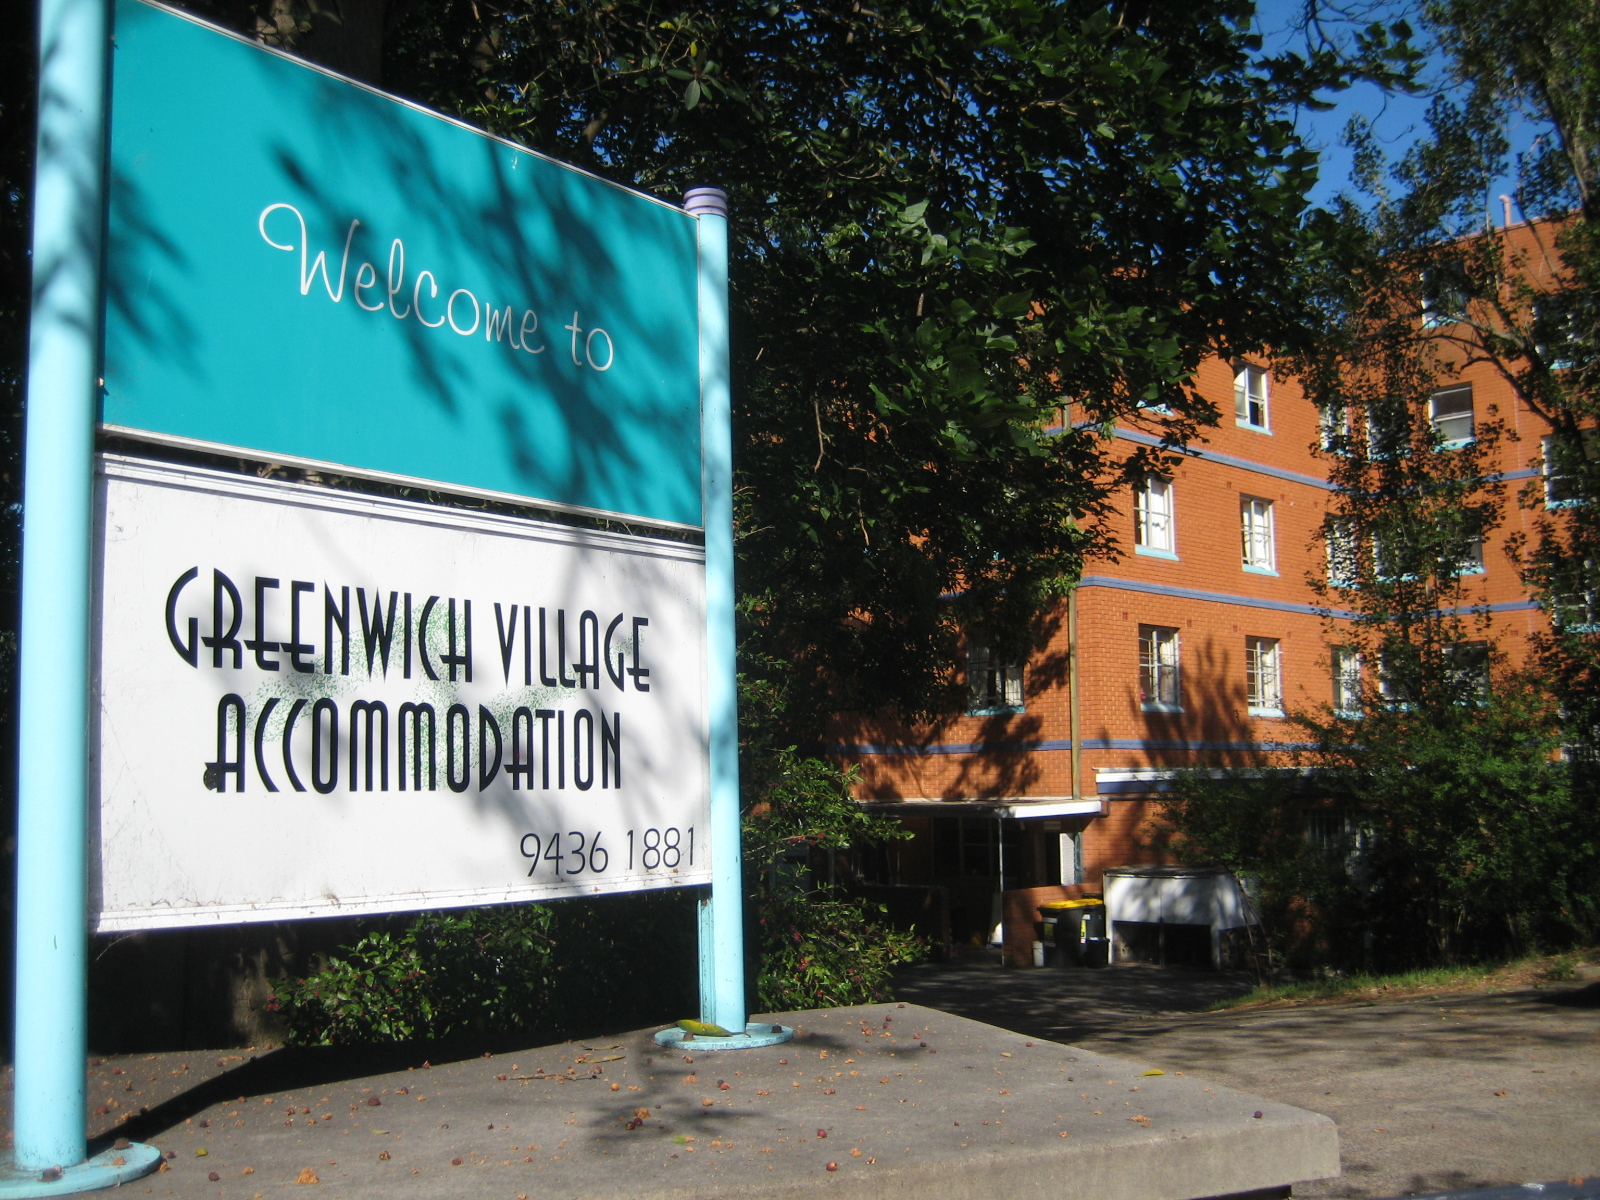 Greenwich Village Accommodation